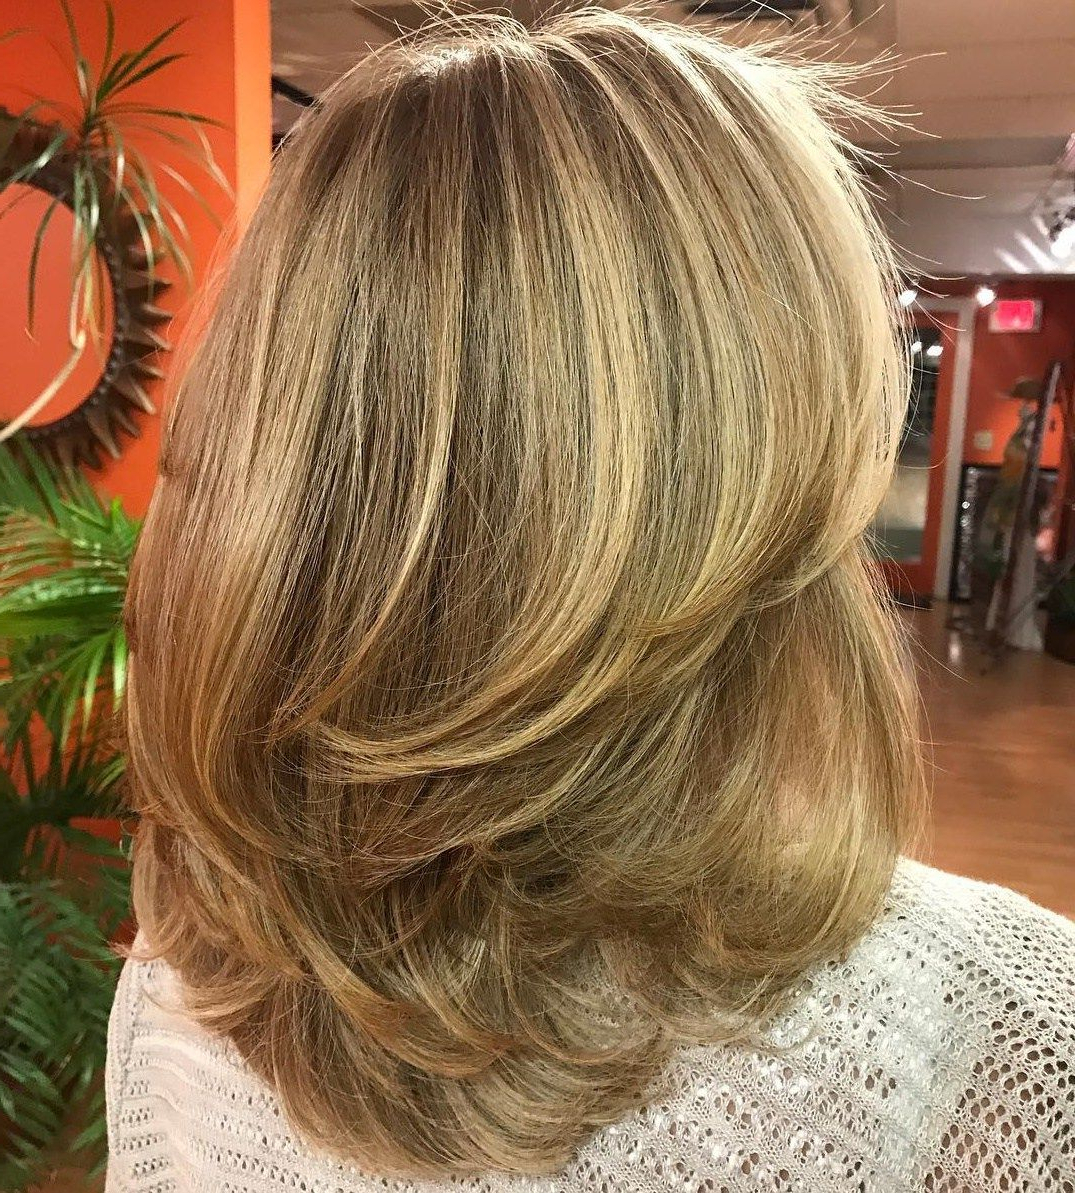 70 Brightest Medium Layered Haircuts To Light You Up (View 17 of 20)